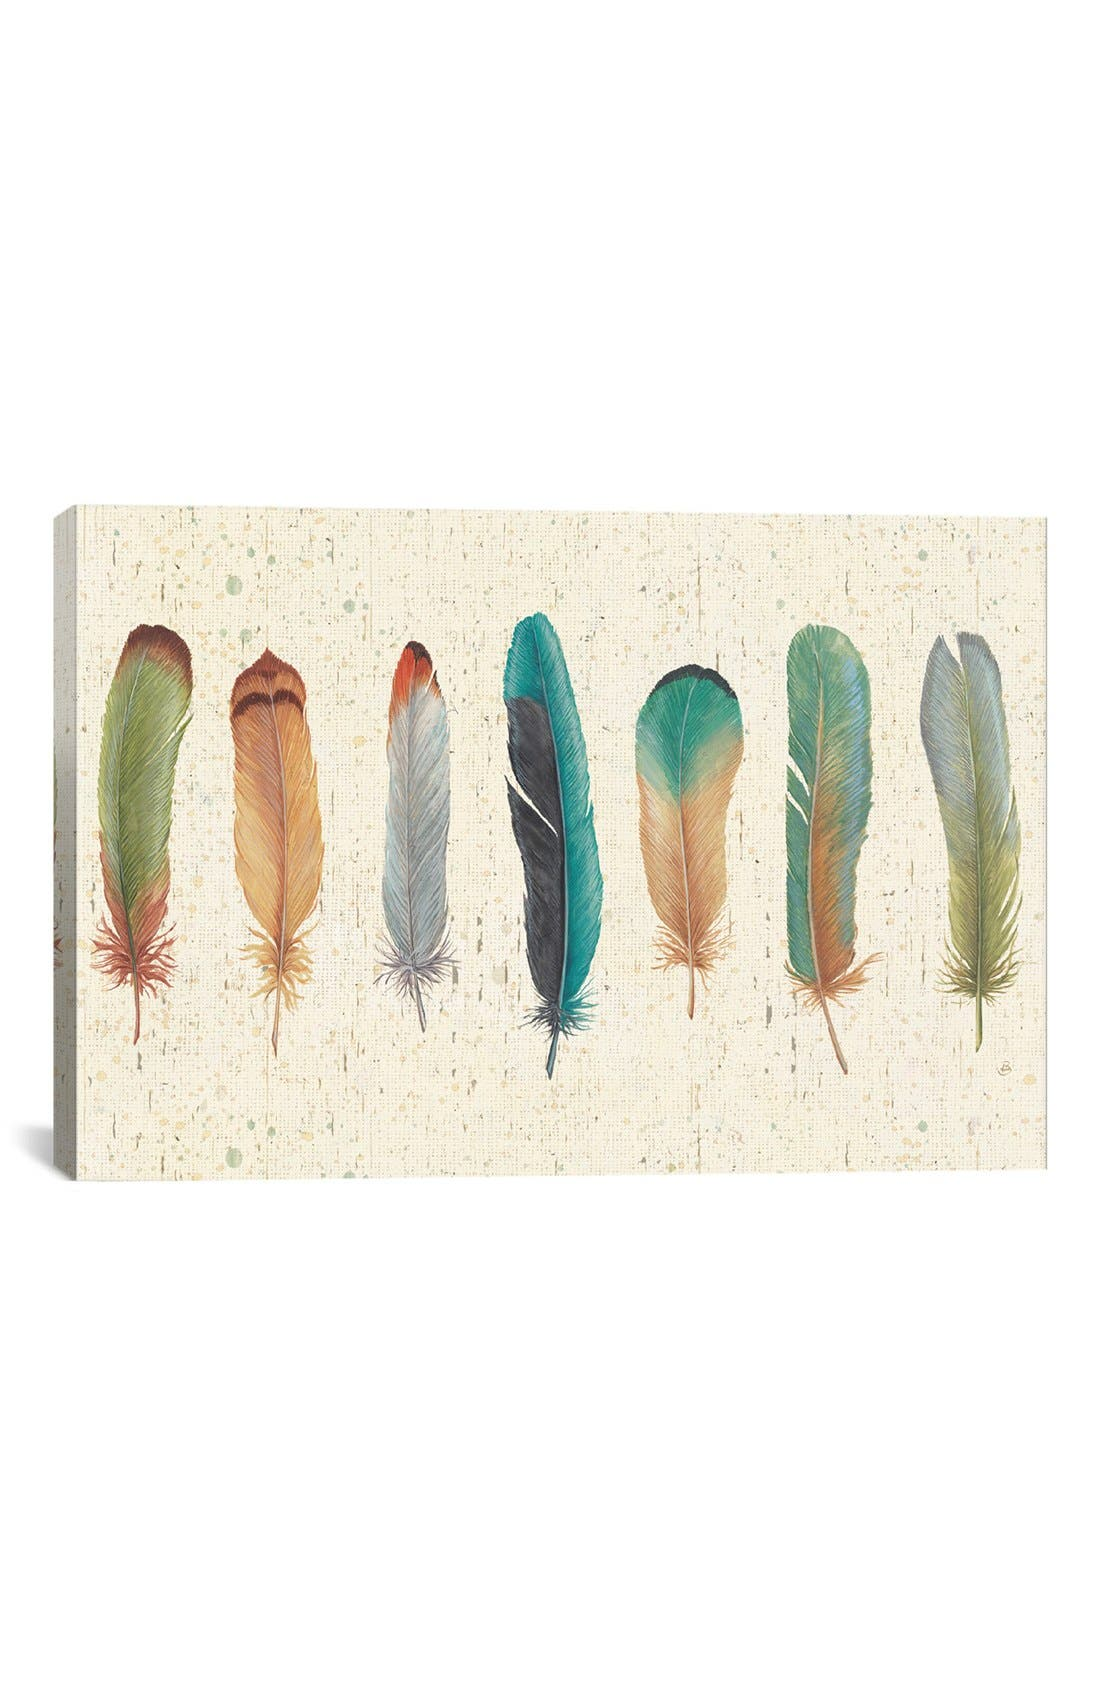 'Feather Tales VII' Giclée Print Canvas Art,                         Main,                         color, Beige